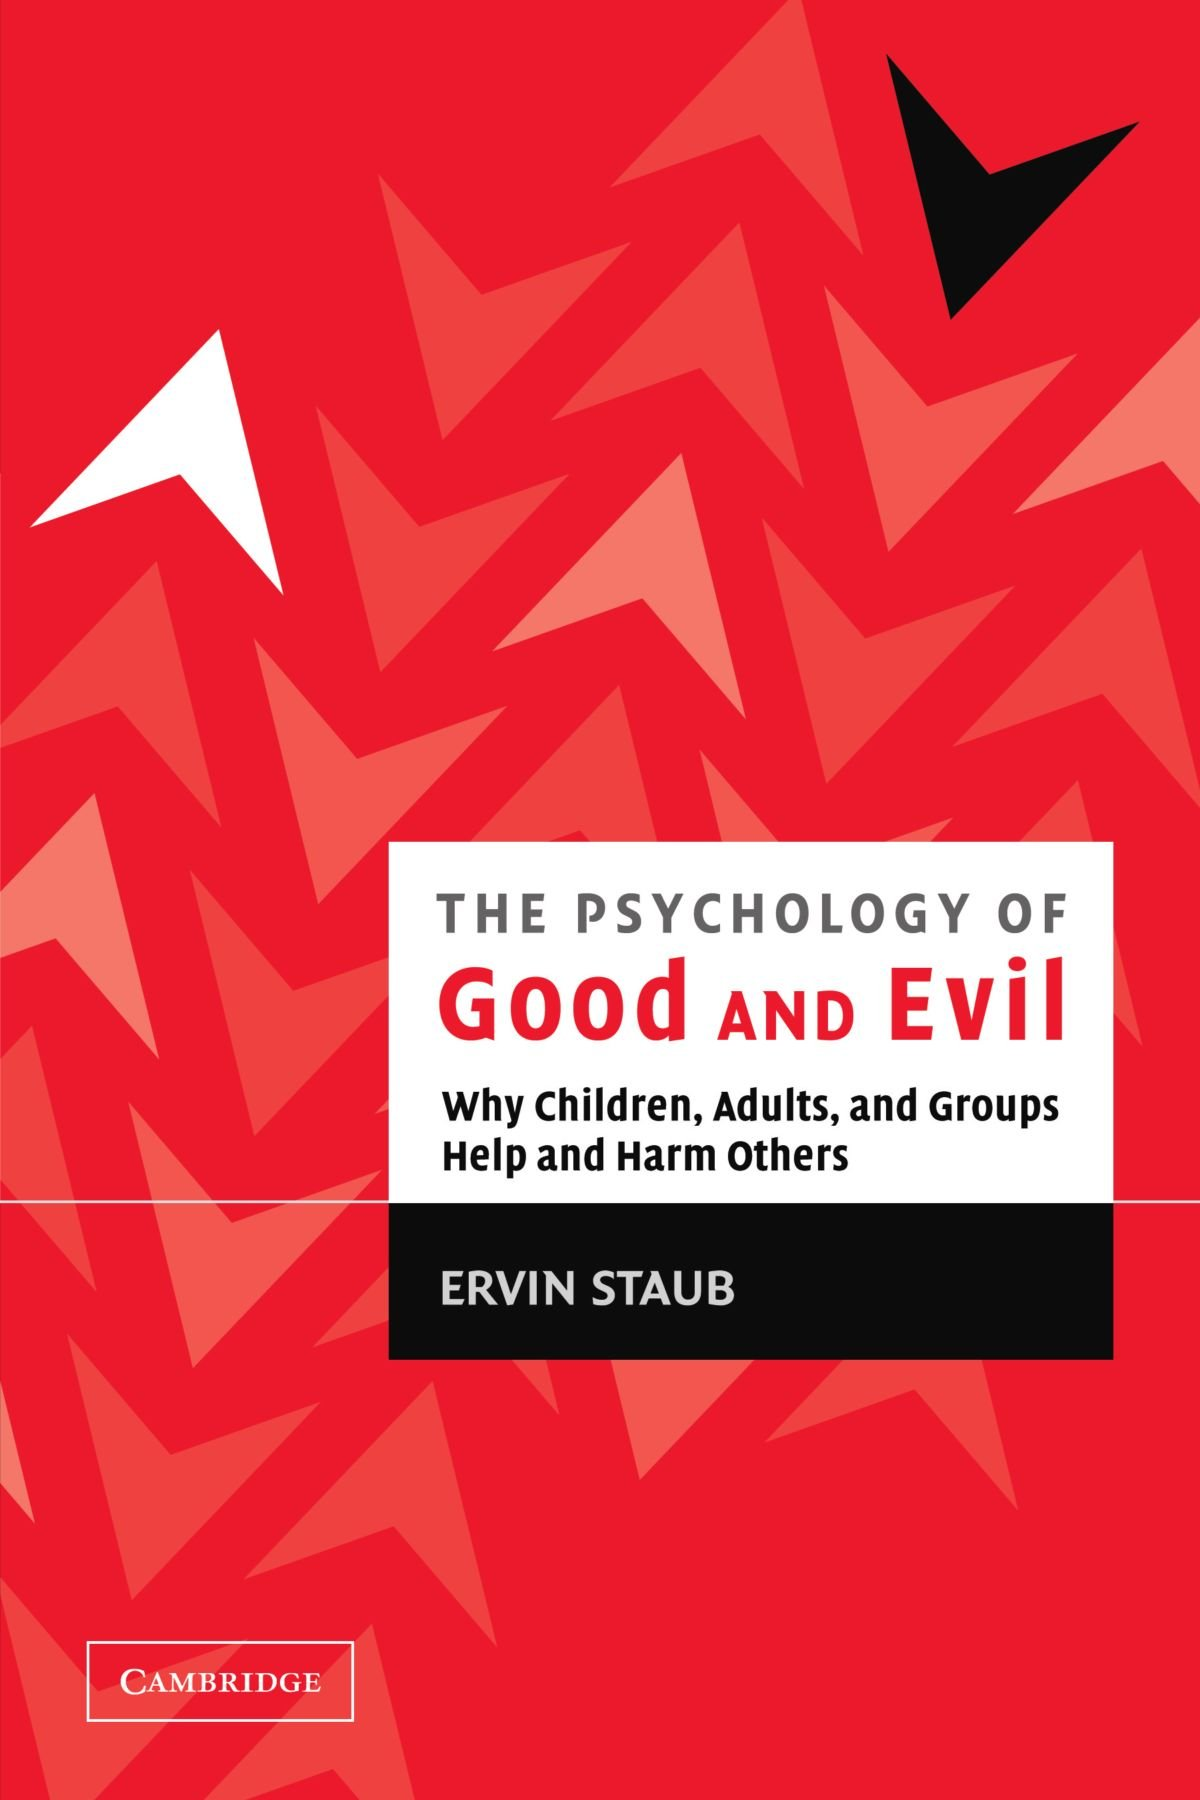 The Psychology of Good and Evil: Why Children, Adults, and Groups Help and Harm Others PDF